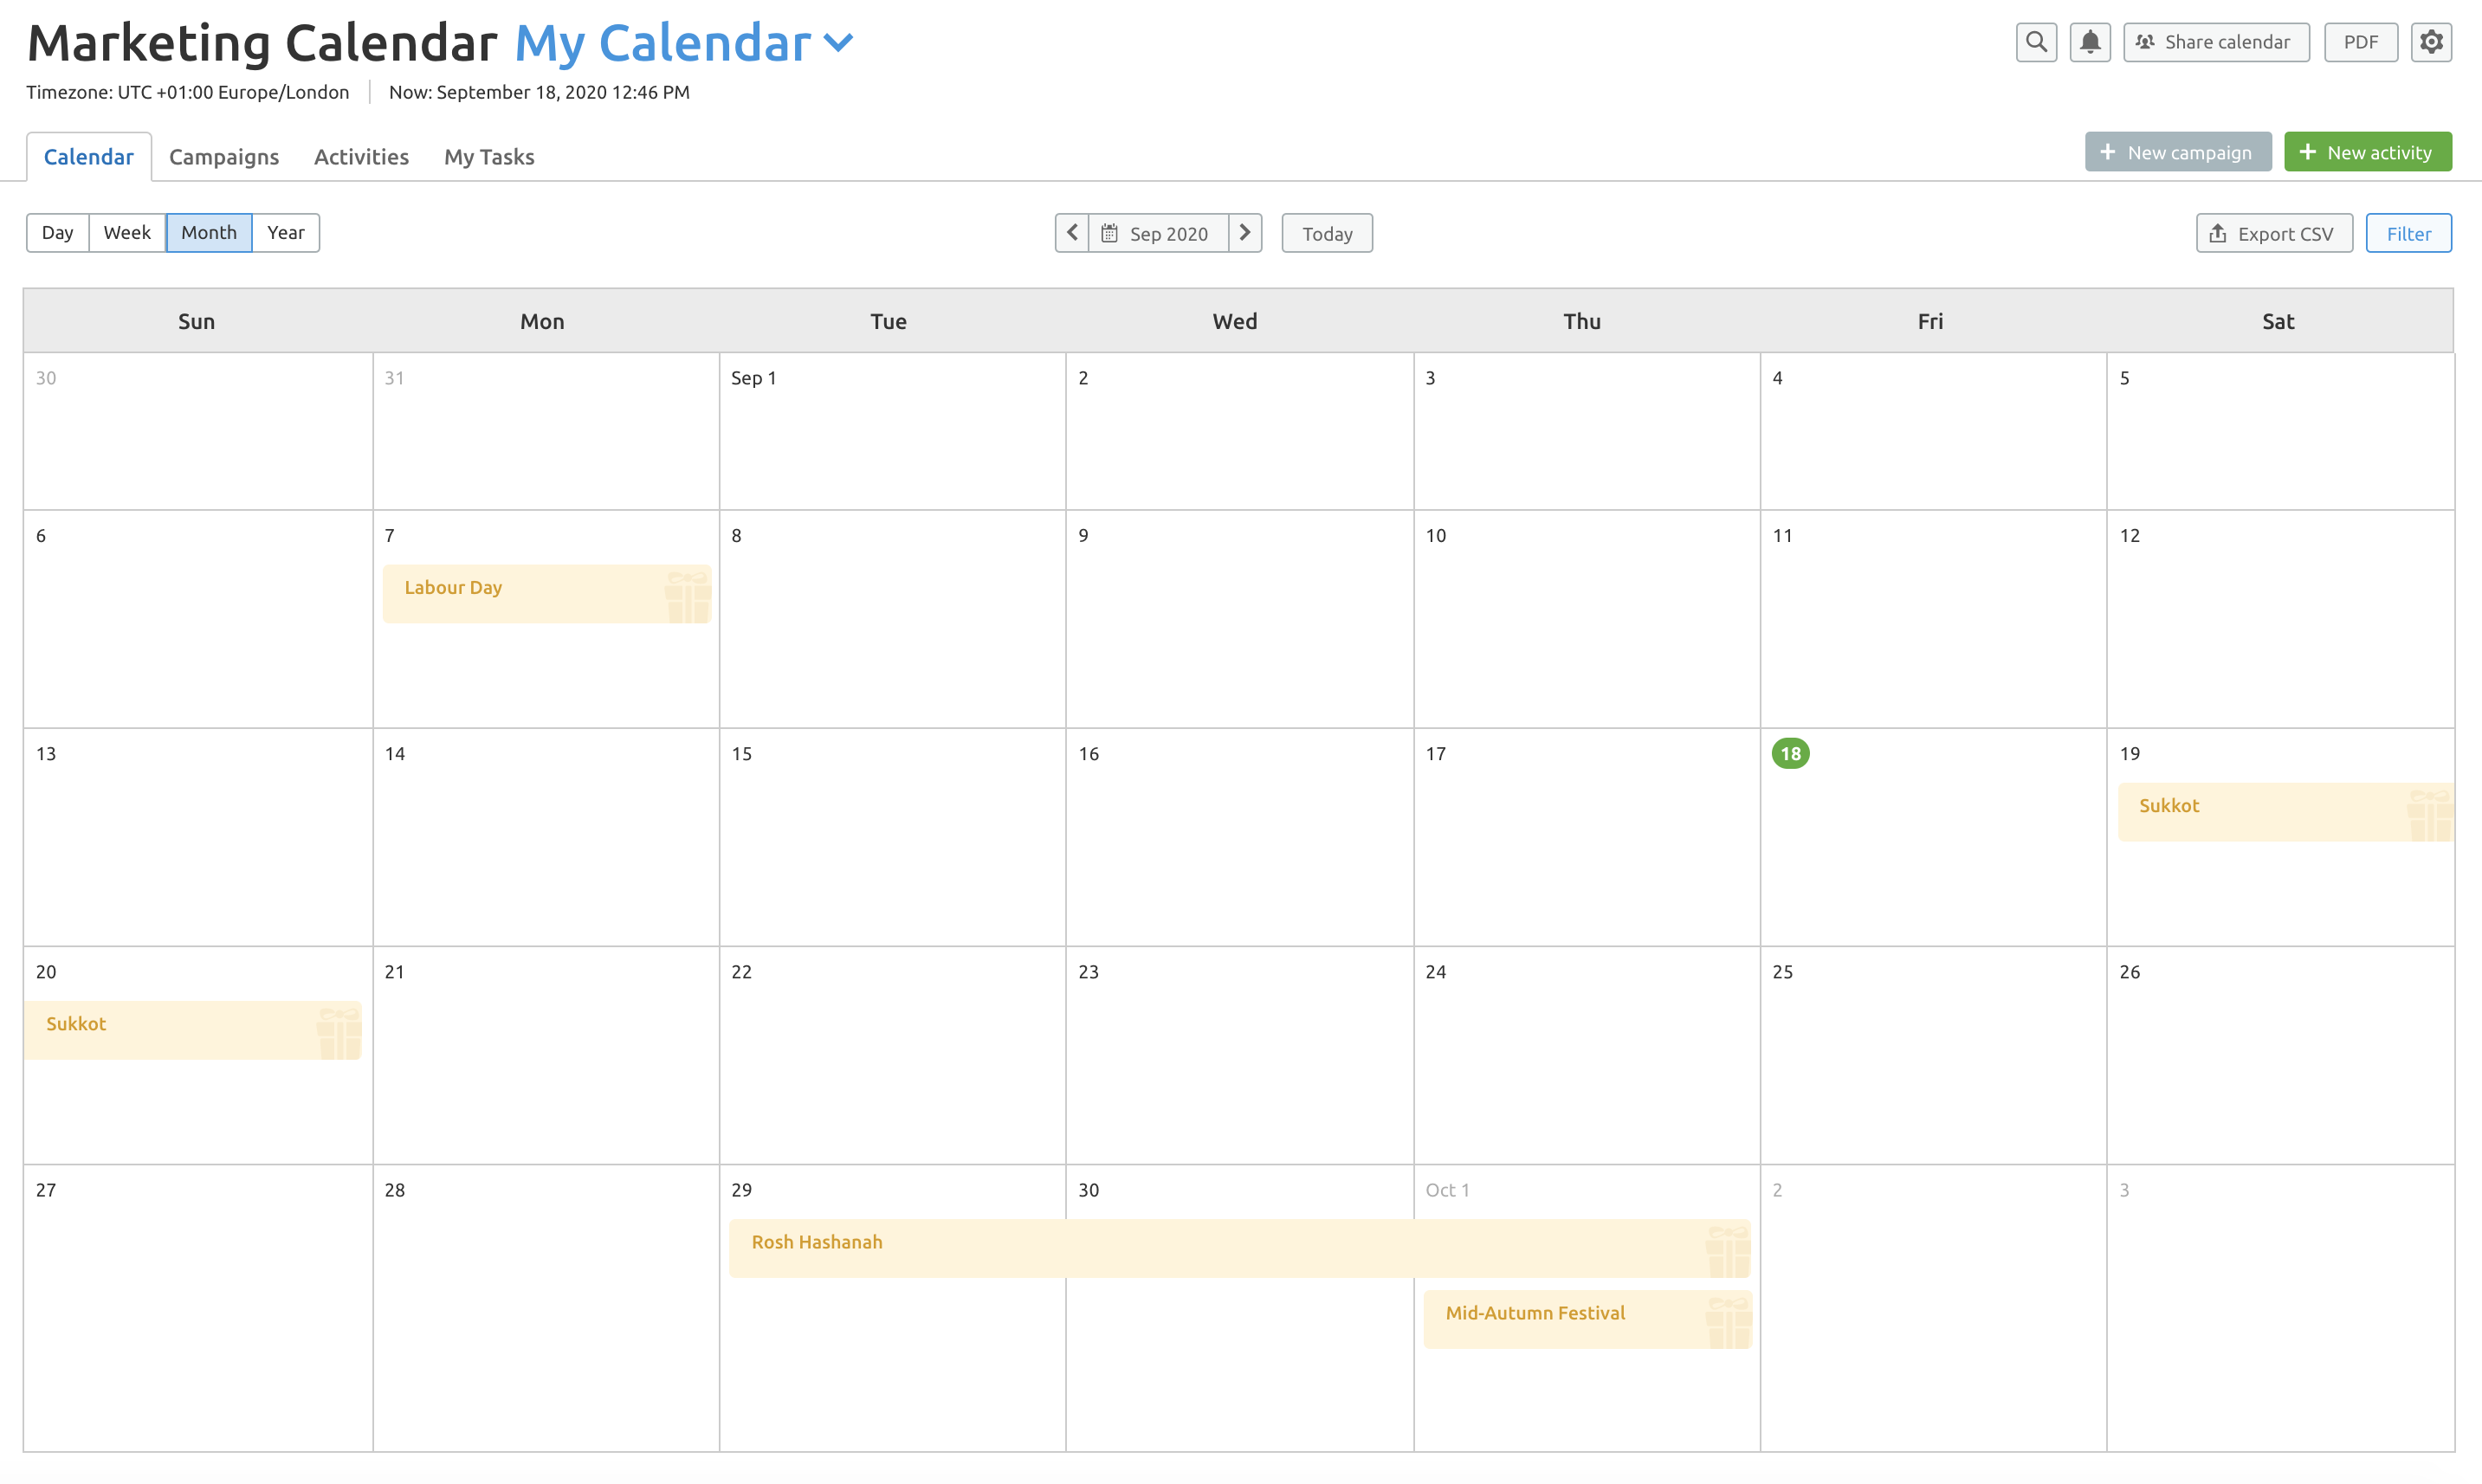 Marketing Calendar screenshot